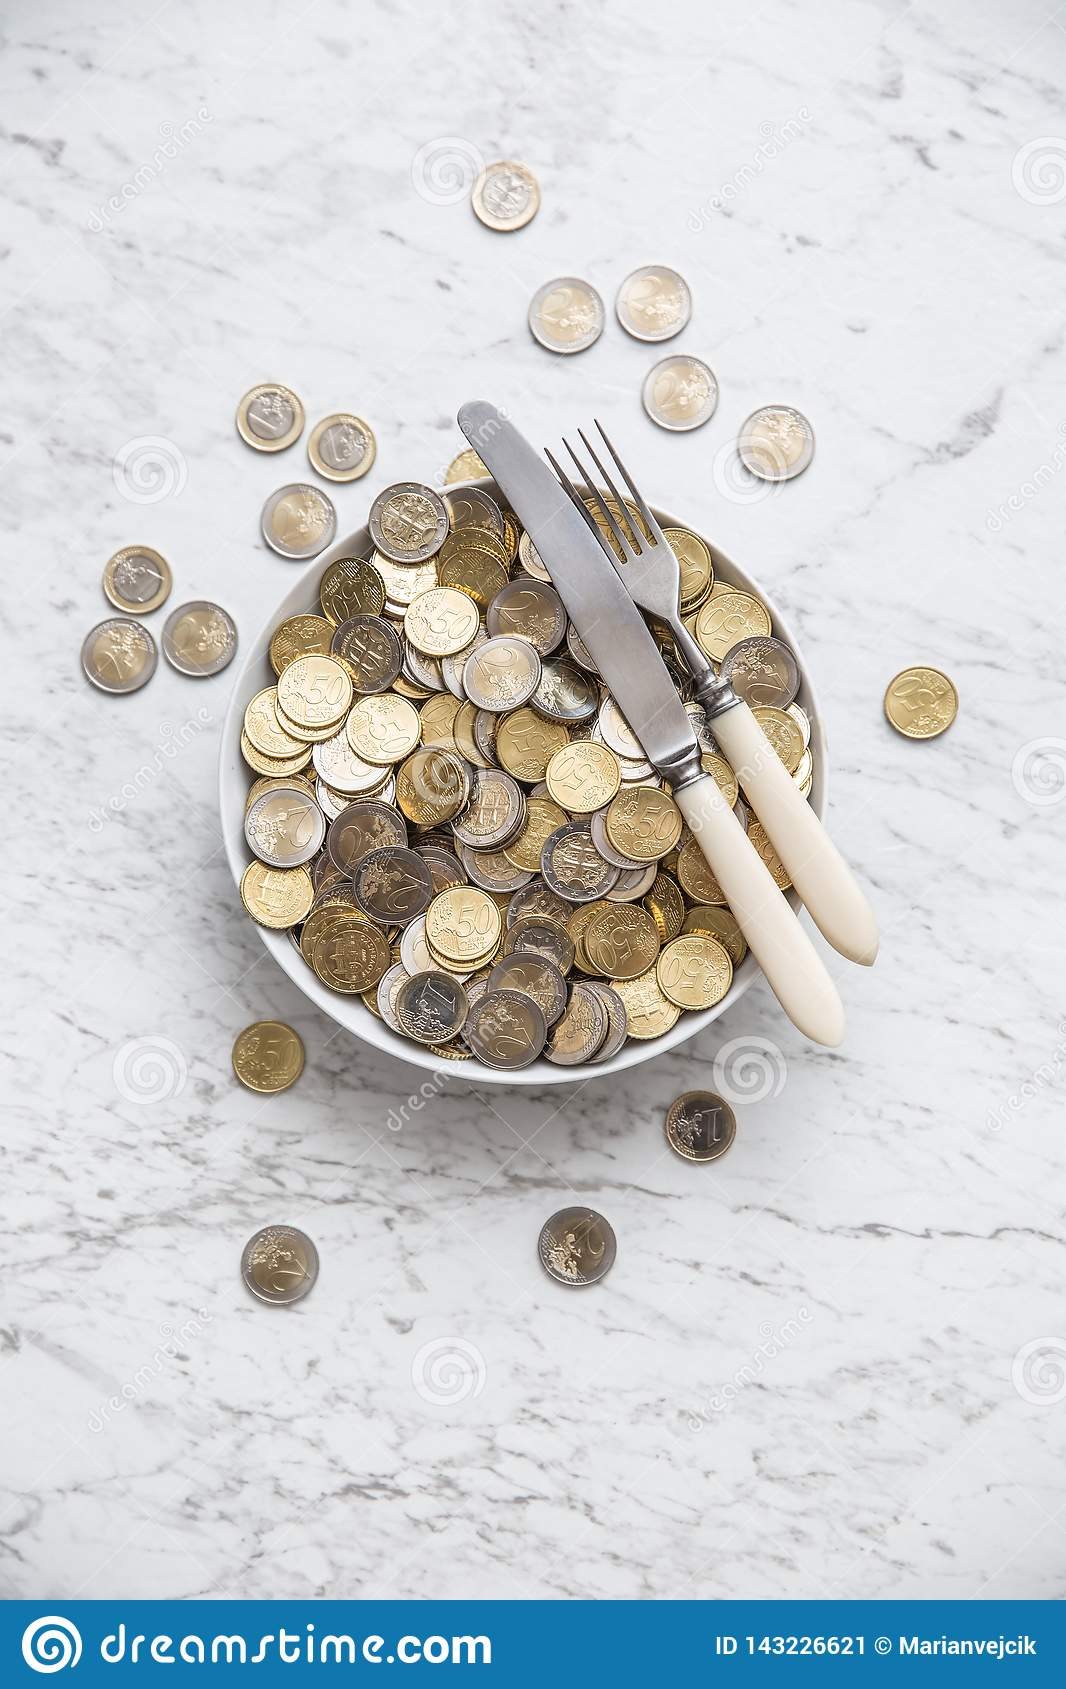 Top of view full plate of euro coins on marble table